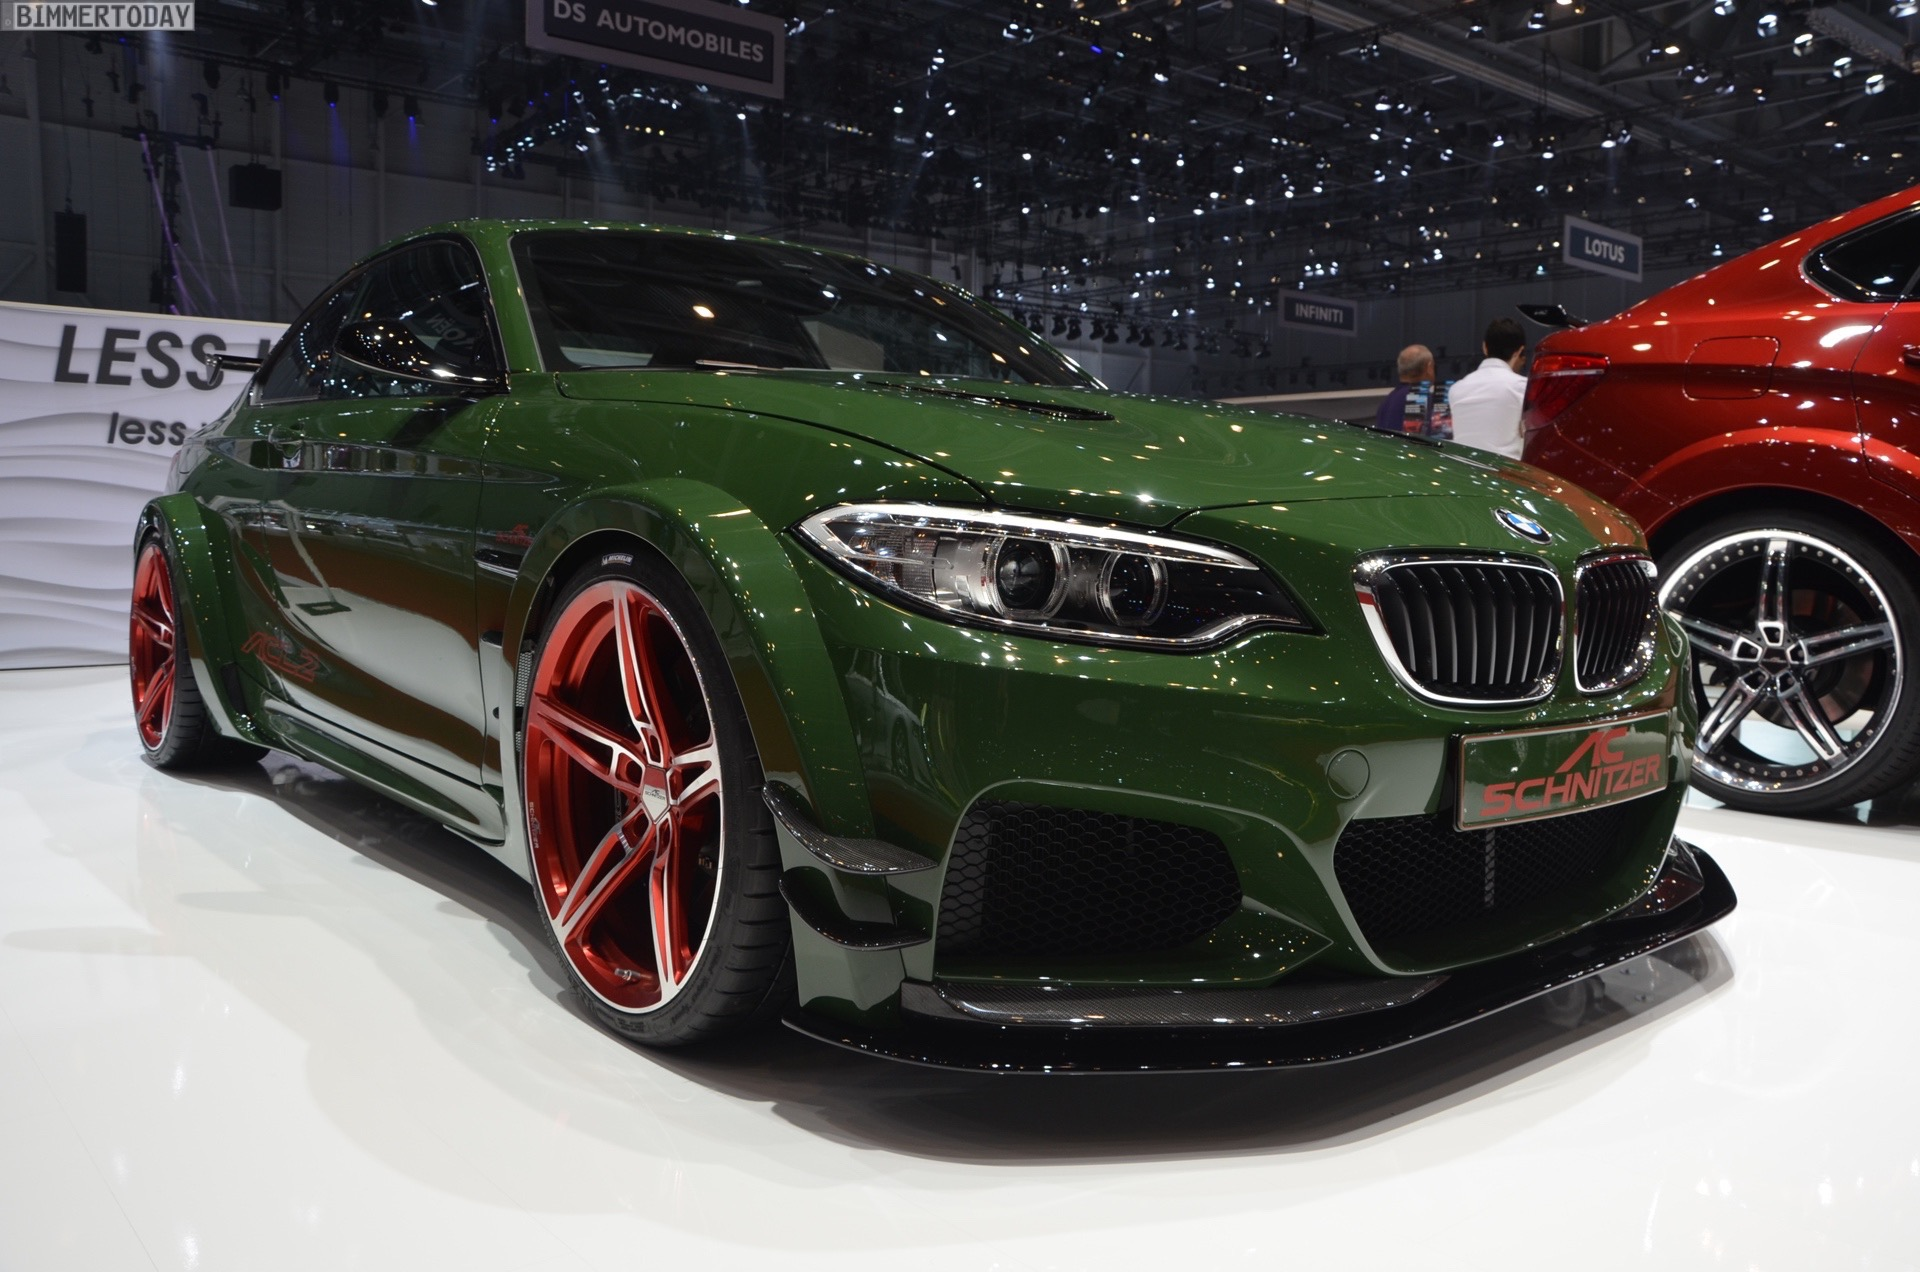 Ac Schnitzer Acl2 With 570 Horsepower Live From 2016